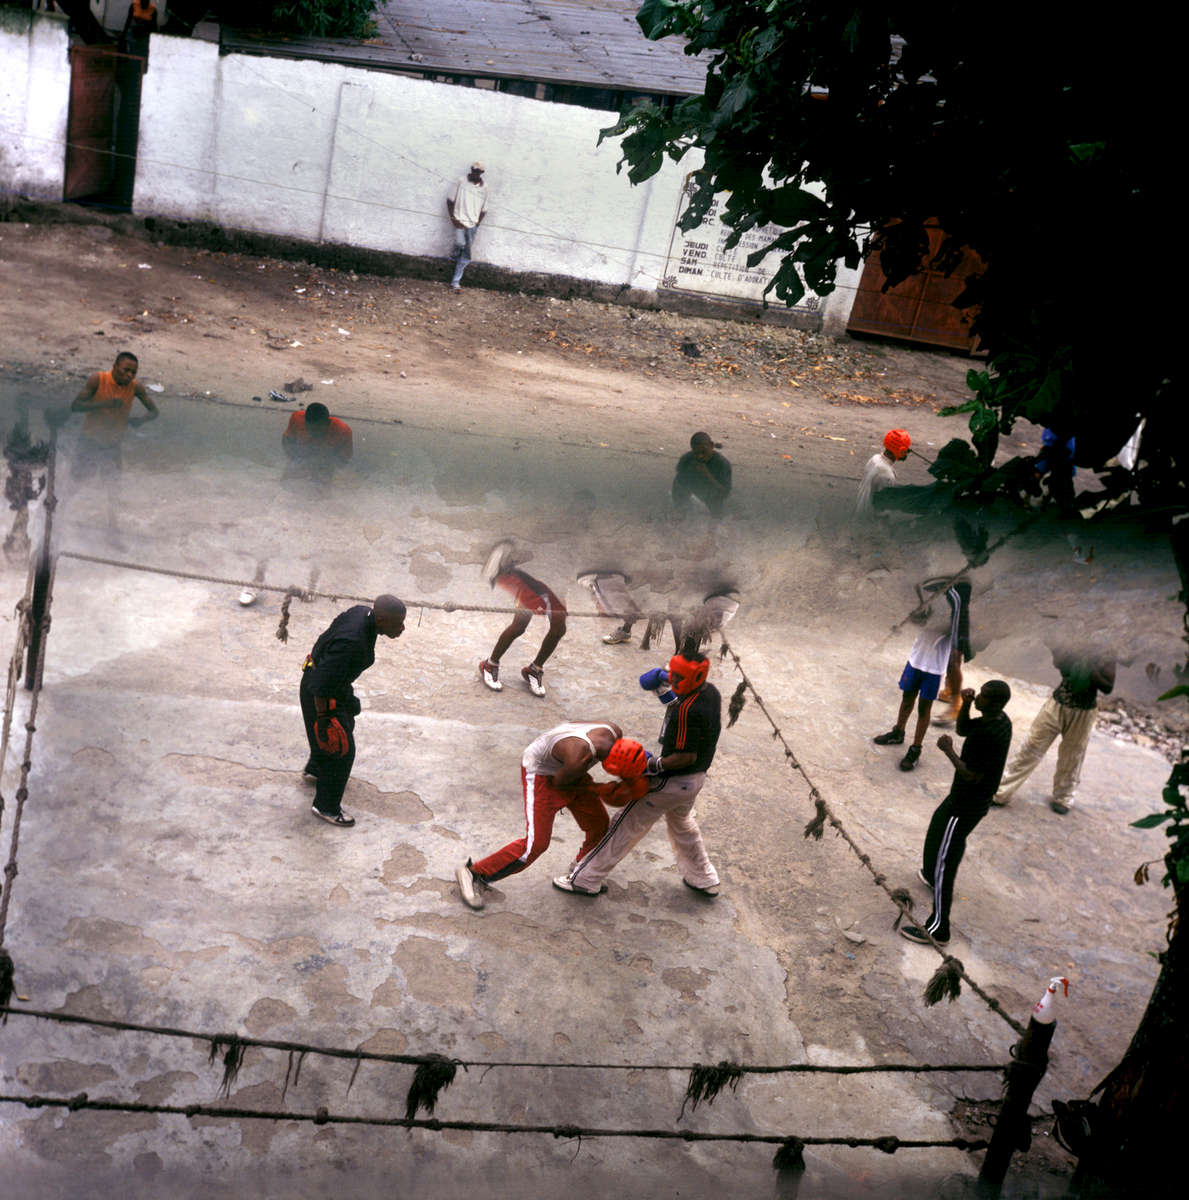 Ever since Muhammed Ali victoriously fought George Foreman in 1974 in Kinshasa, famed by the documentary {quote}Rumble in the Jungle{quote}, boxing became a national obsession among youth wanting to dream beyond their neighborhood streets...photo taken 30 years later in Kinshasa's Lingwala quartier